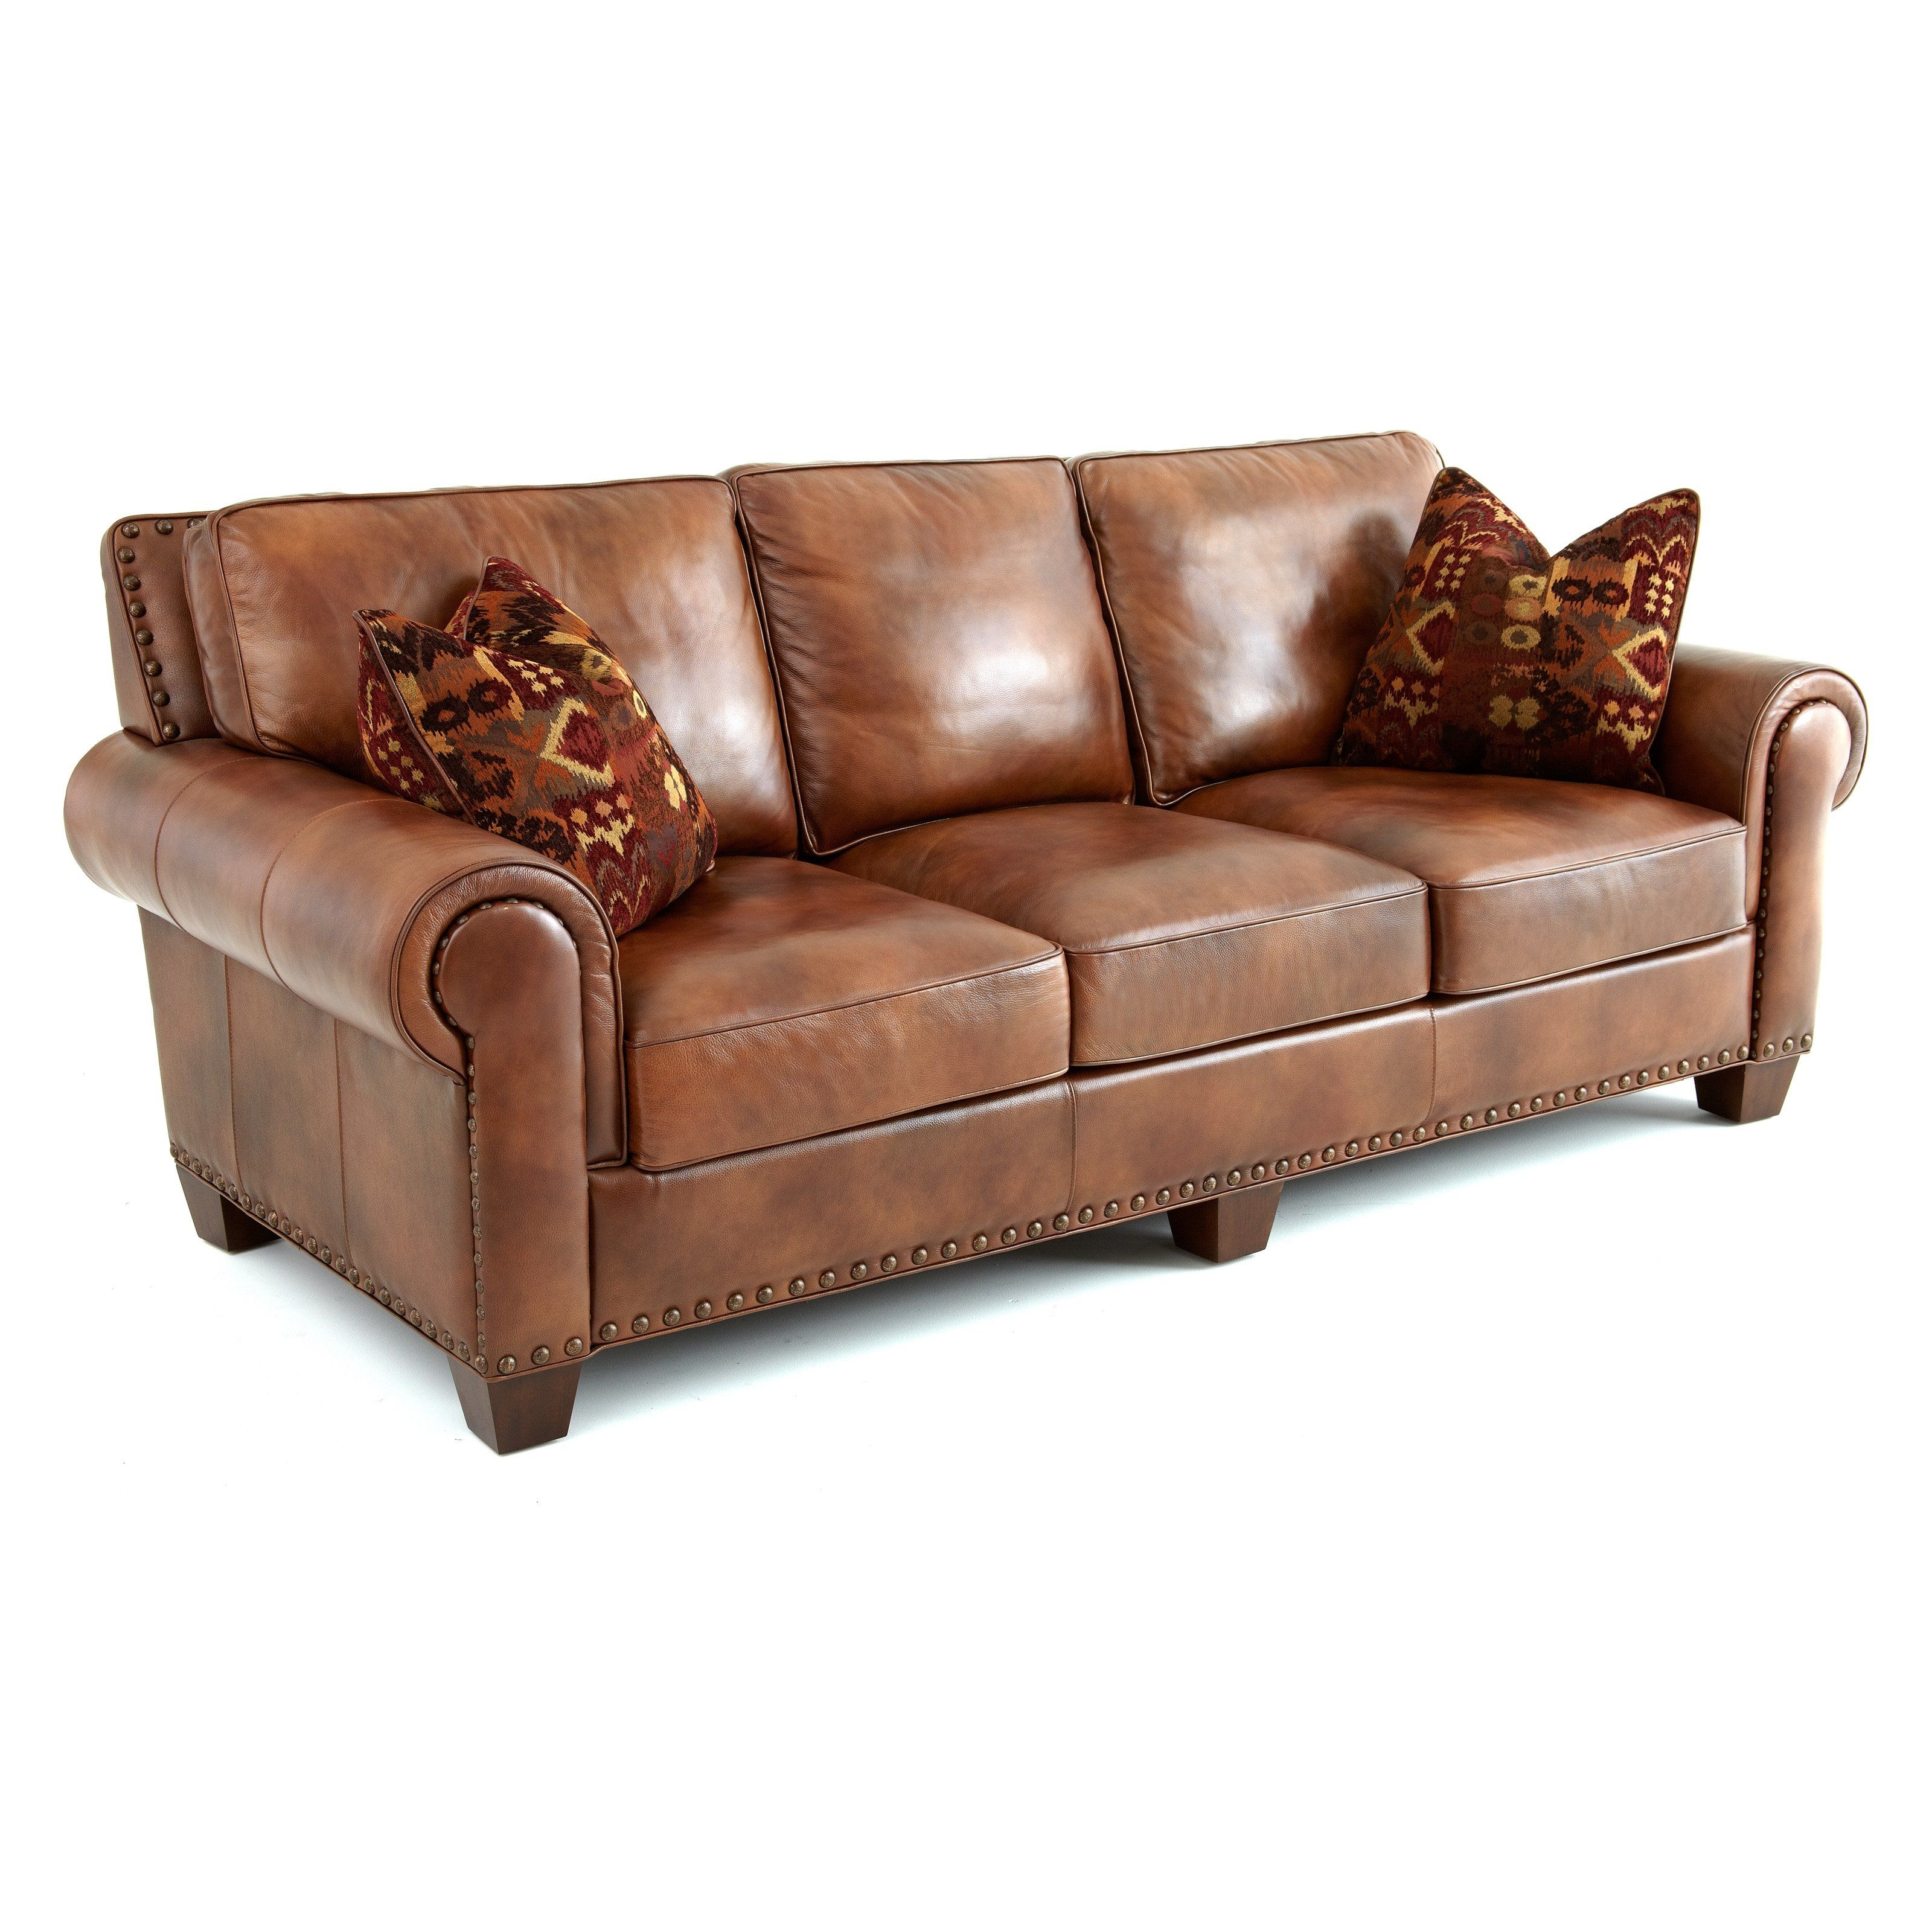 Best used-look leather sofa 40 redesign using modern ideas with UQCSFHV